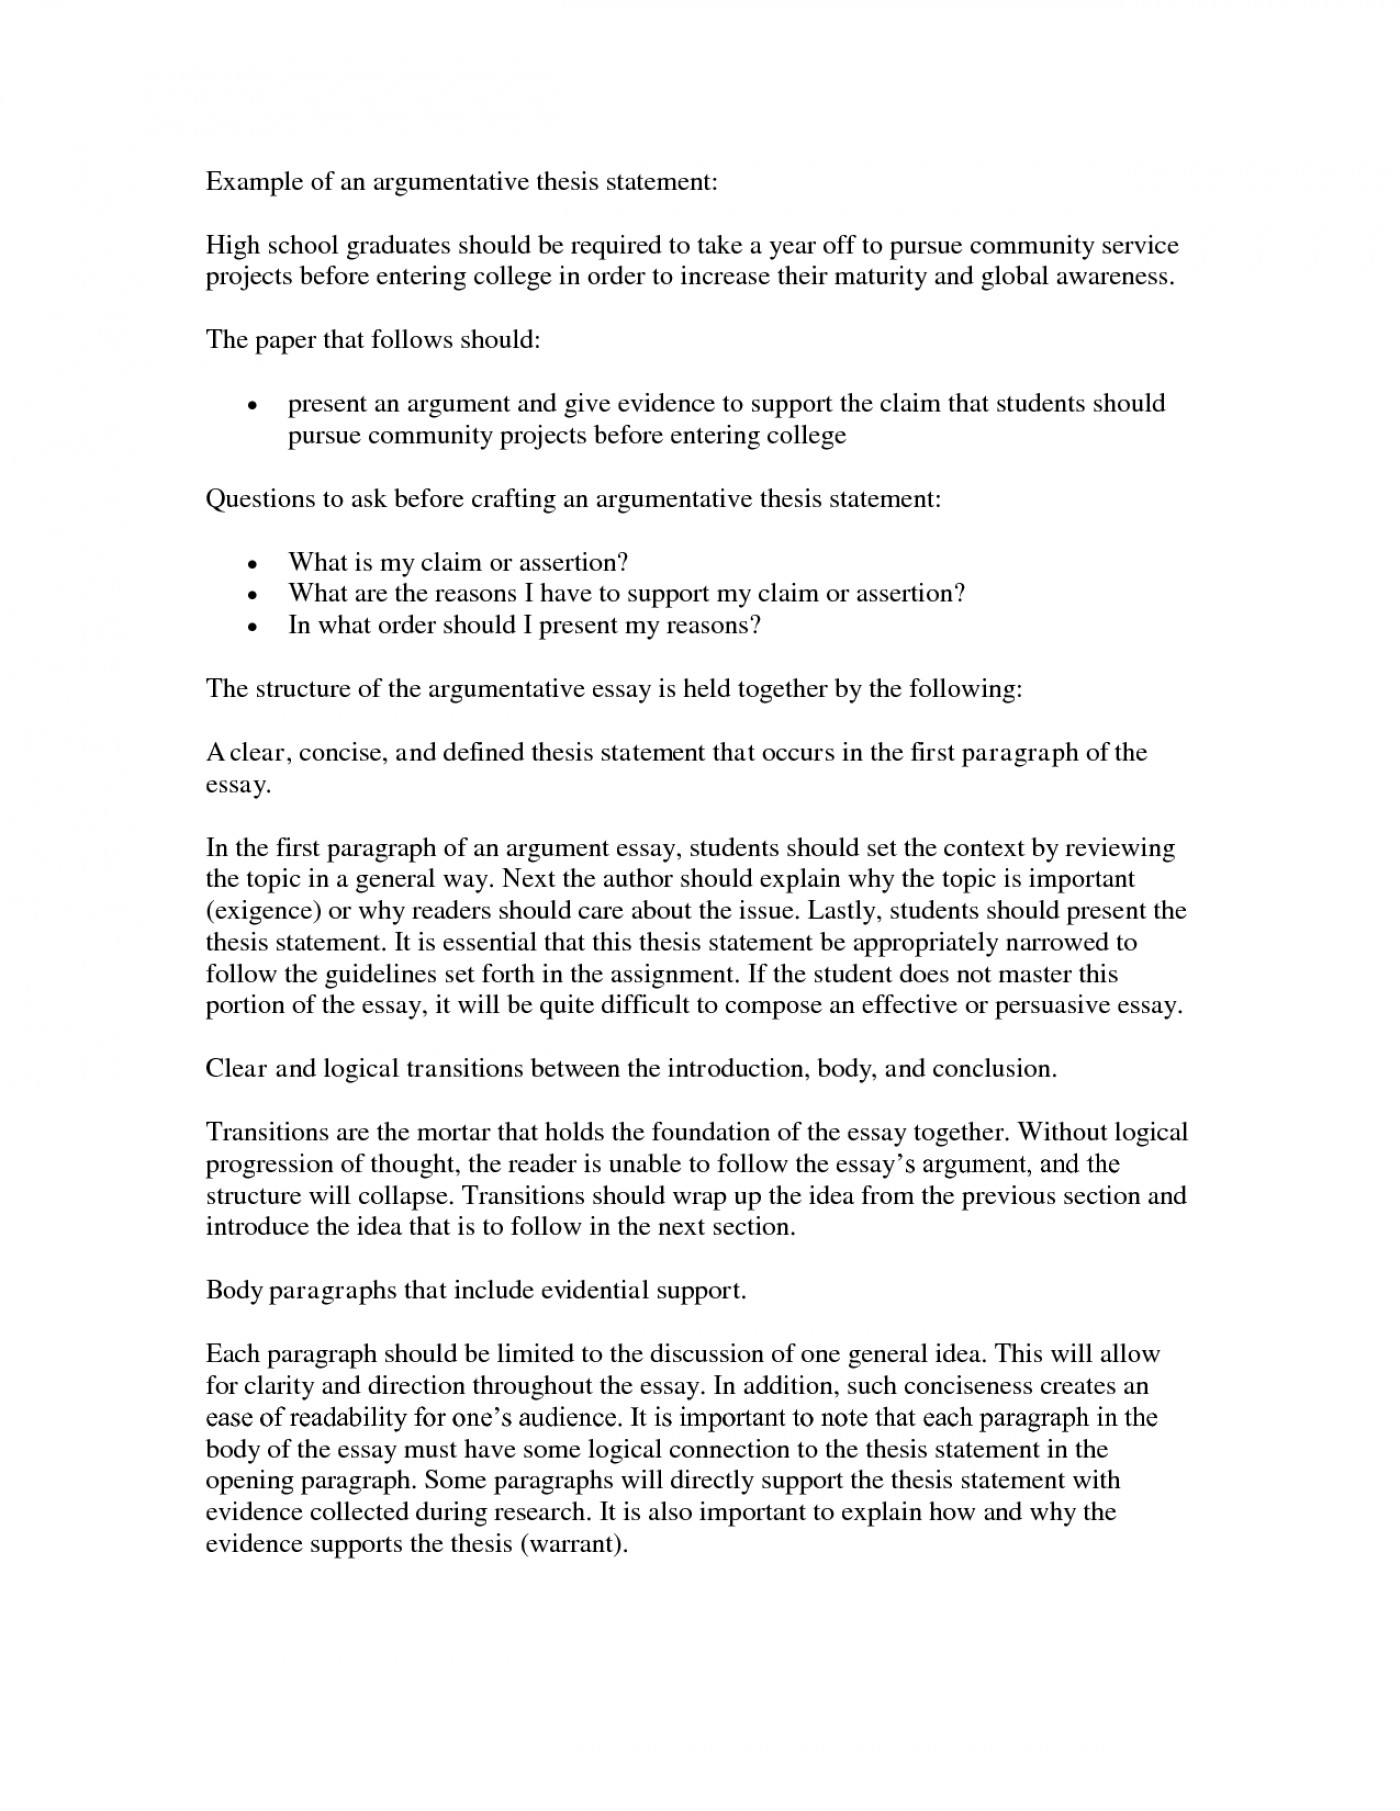 012 Argumentative Thesis Statement For Research Paper Amazing How To Write A An 1400